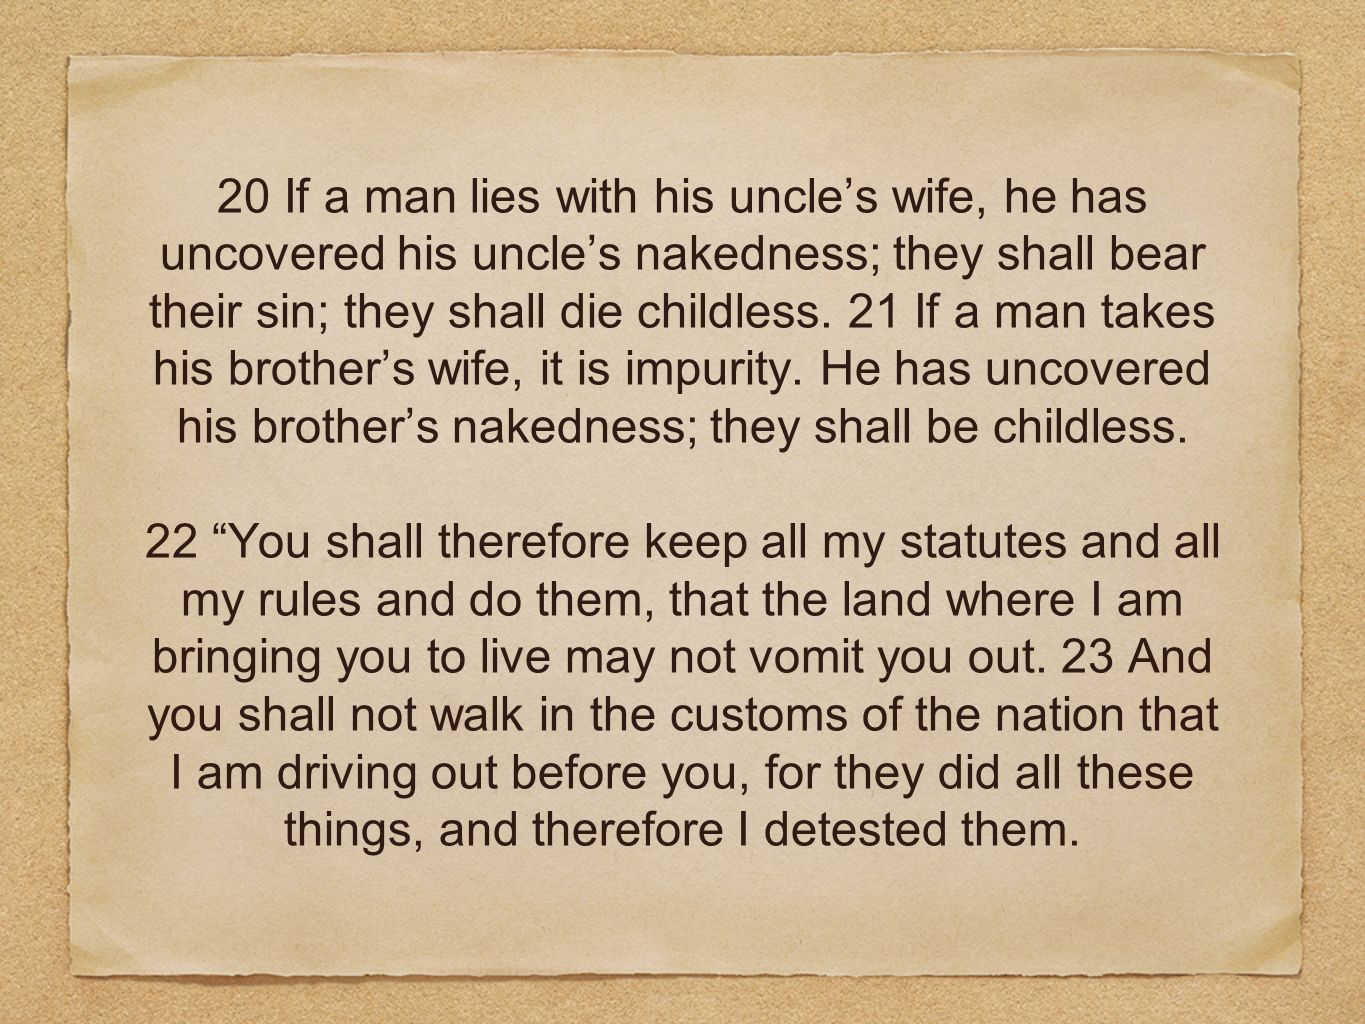 20 If a man lies with his uncles wife, he has uncovered his uncles nakedness; they shall bear their sin; they shall die childless.